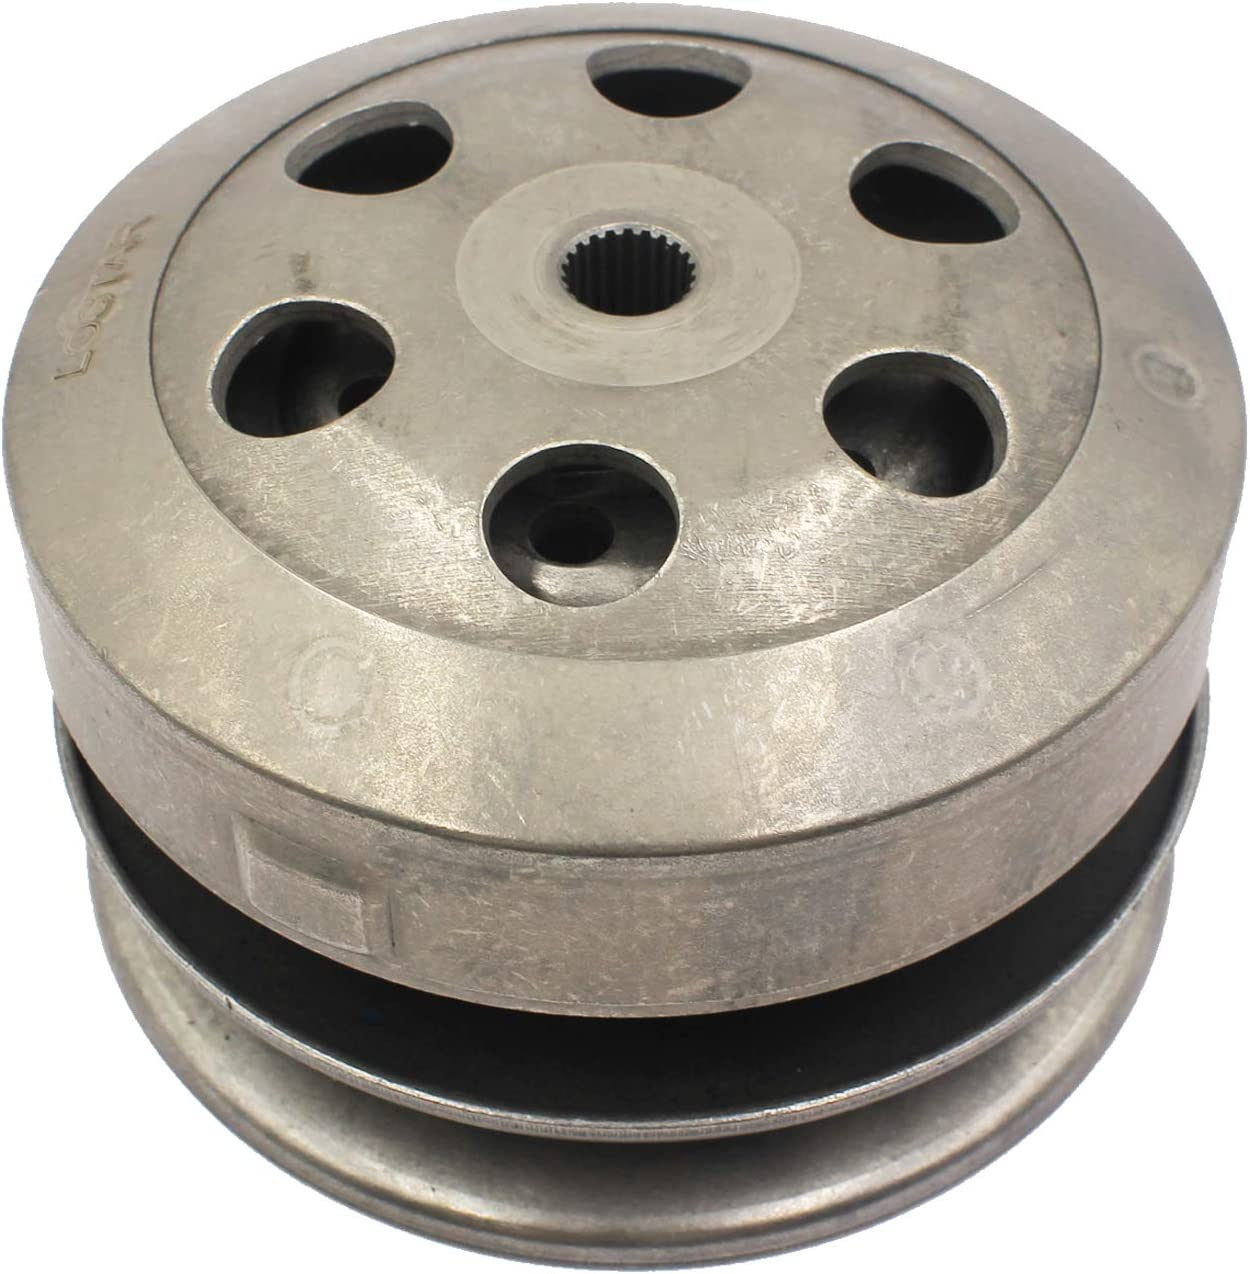 Driven Pulley Clutch For GY6 50cc 80cc Scooter Moped Go Kart Dirt Bike